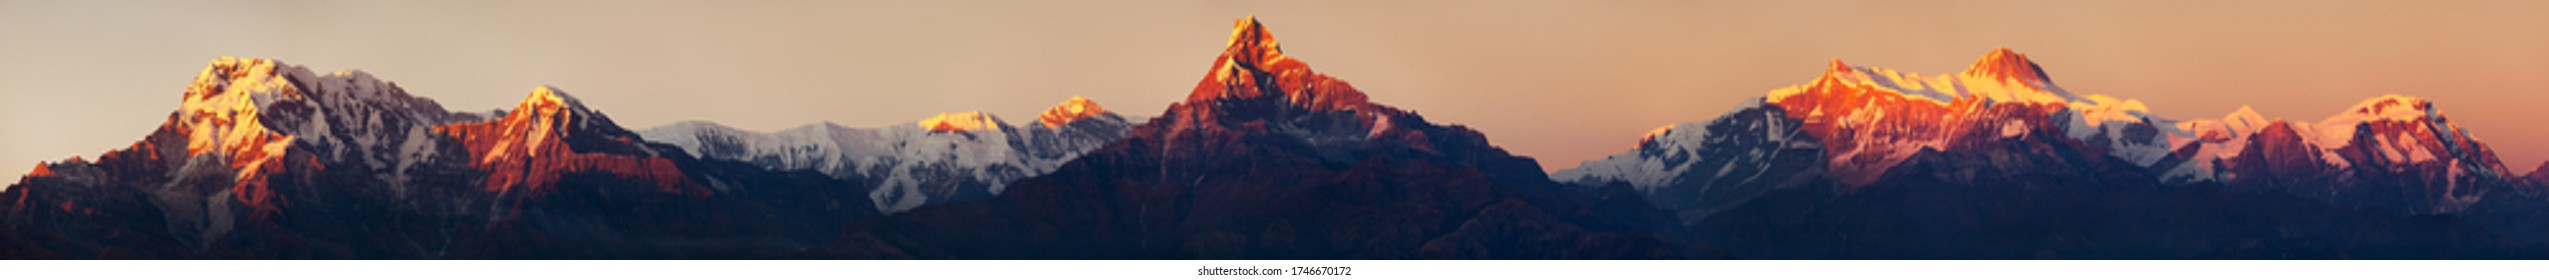 Evening, sunset view of mount Annapurna and Machapuchare or Machhapuchhare, Nepal Himalayas mountains